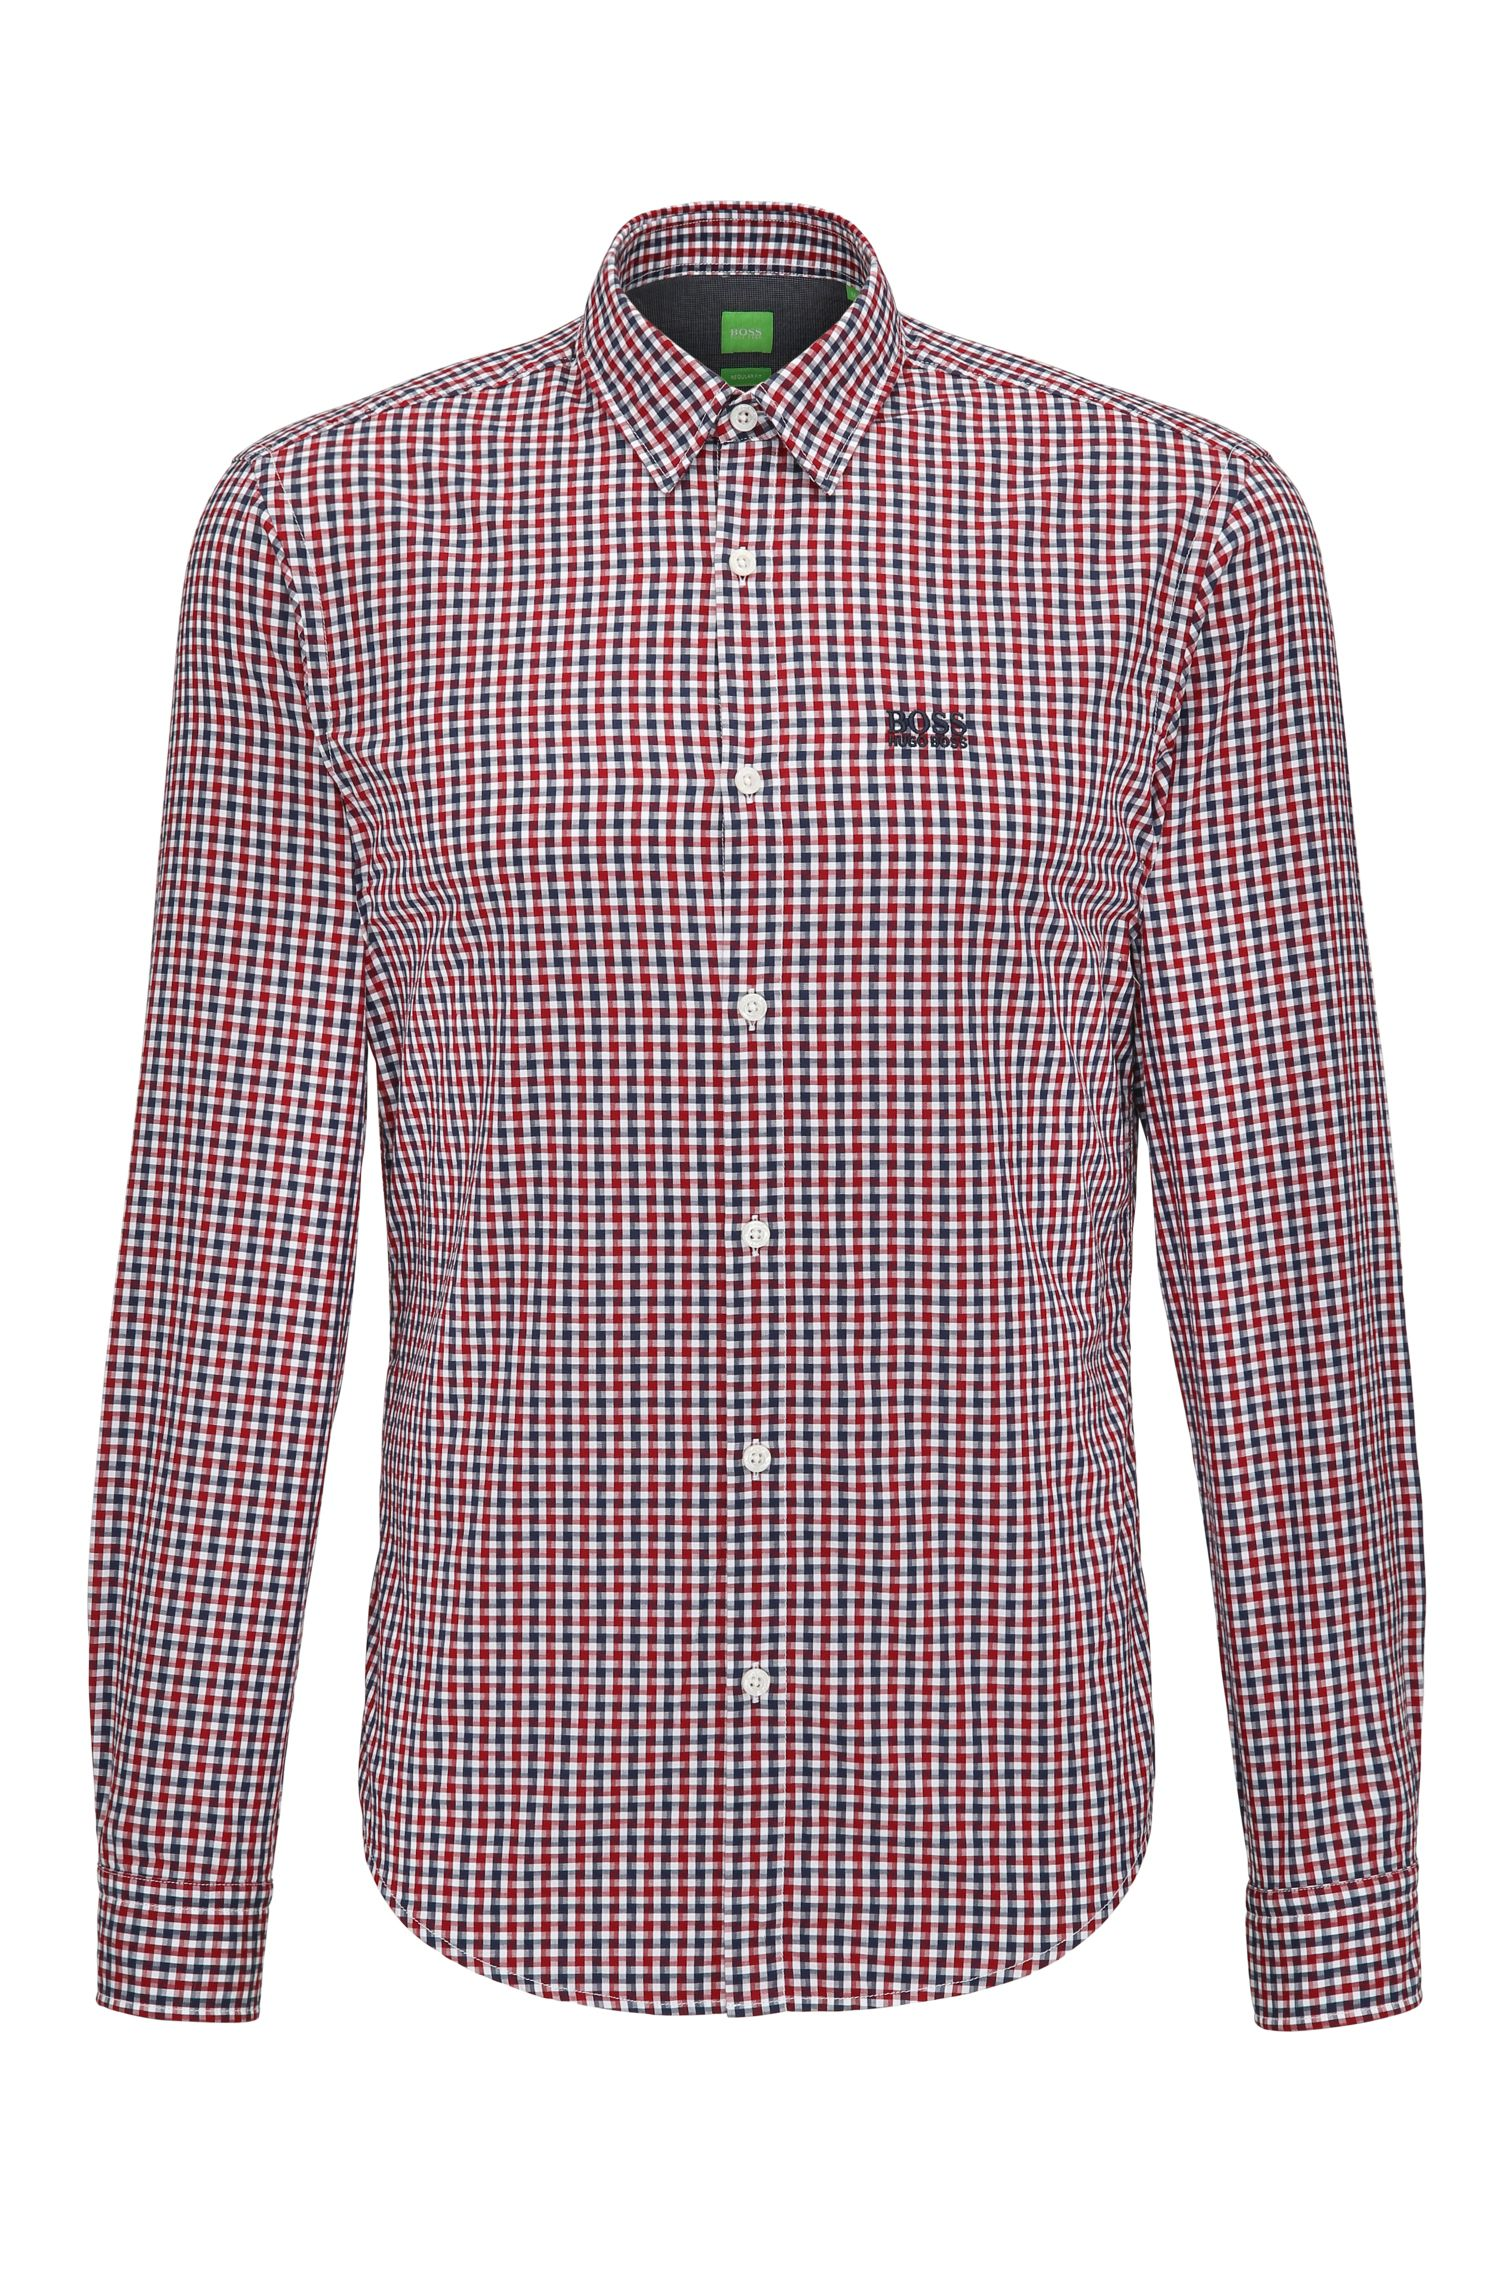 Regular-fit cotton shirt in a Vichy check